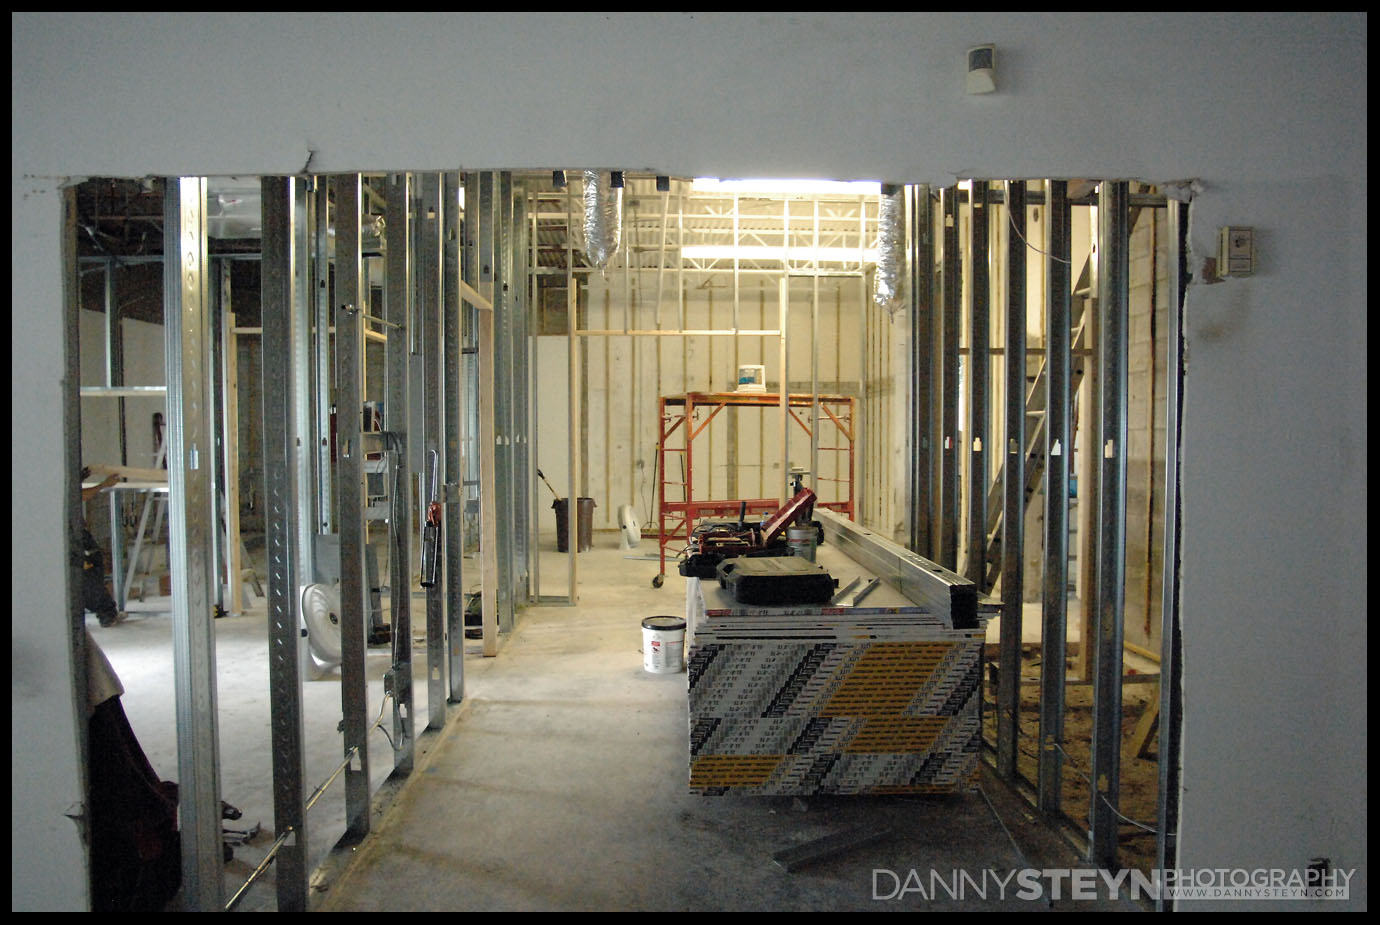 Looking from the Main Portrait studio, through the Gallery into the Prop room. Lobby to the left, new ADA bathroom to the right